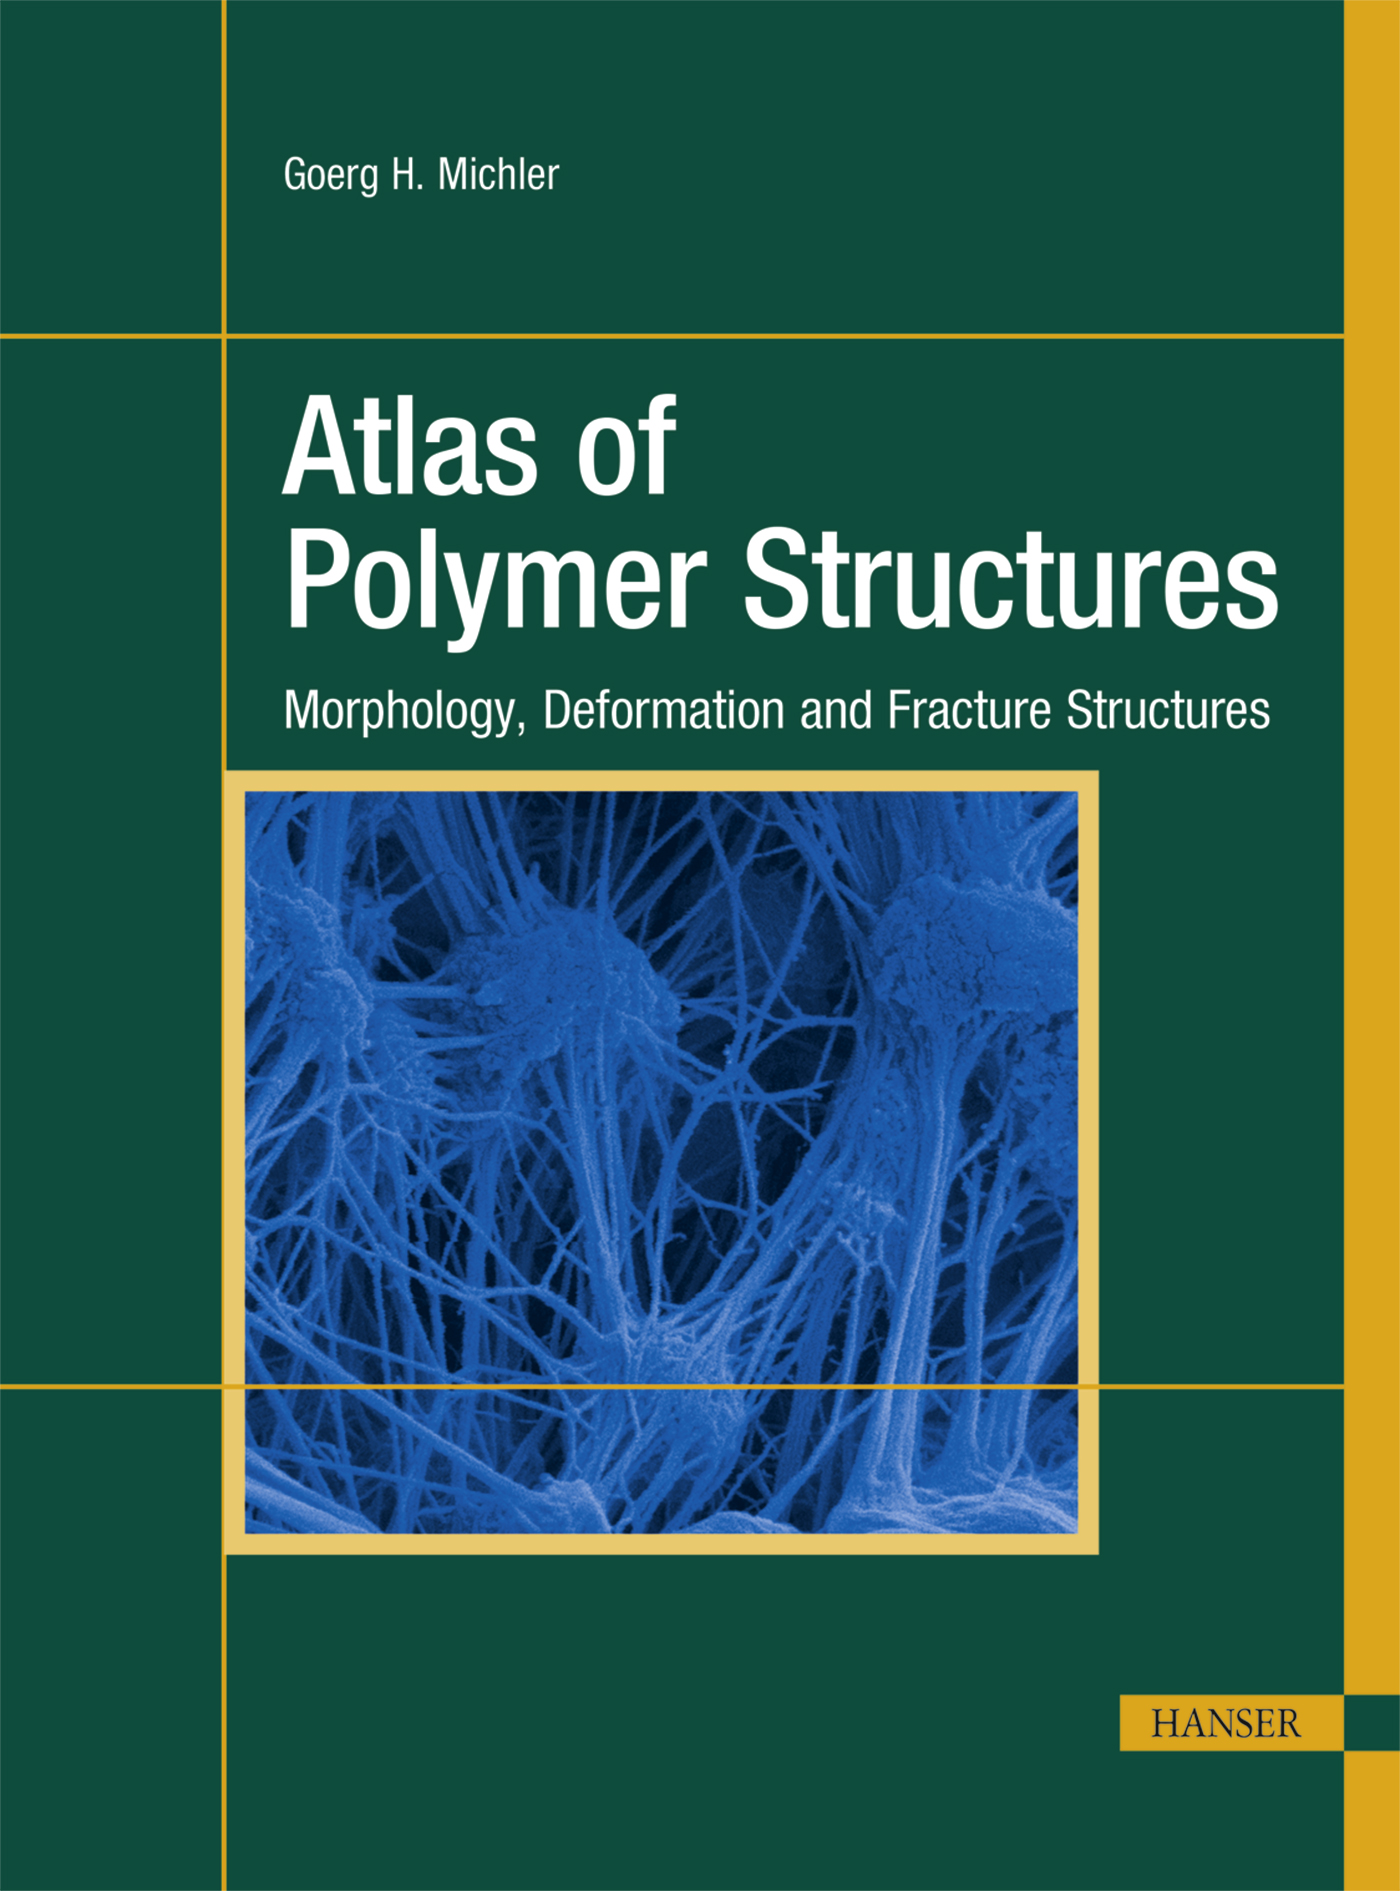 Michler, Atlas of Polymer Structures, 978-1-56990-557-9